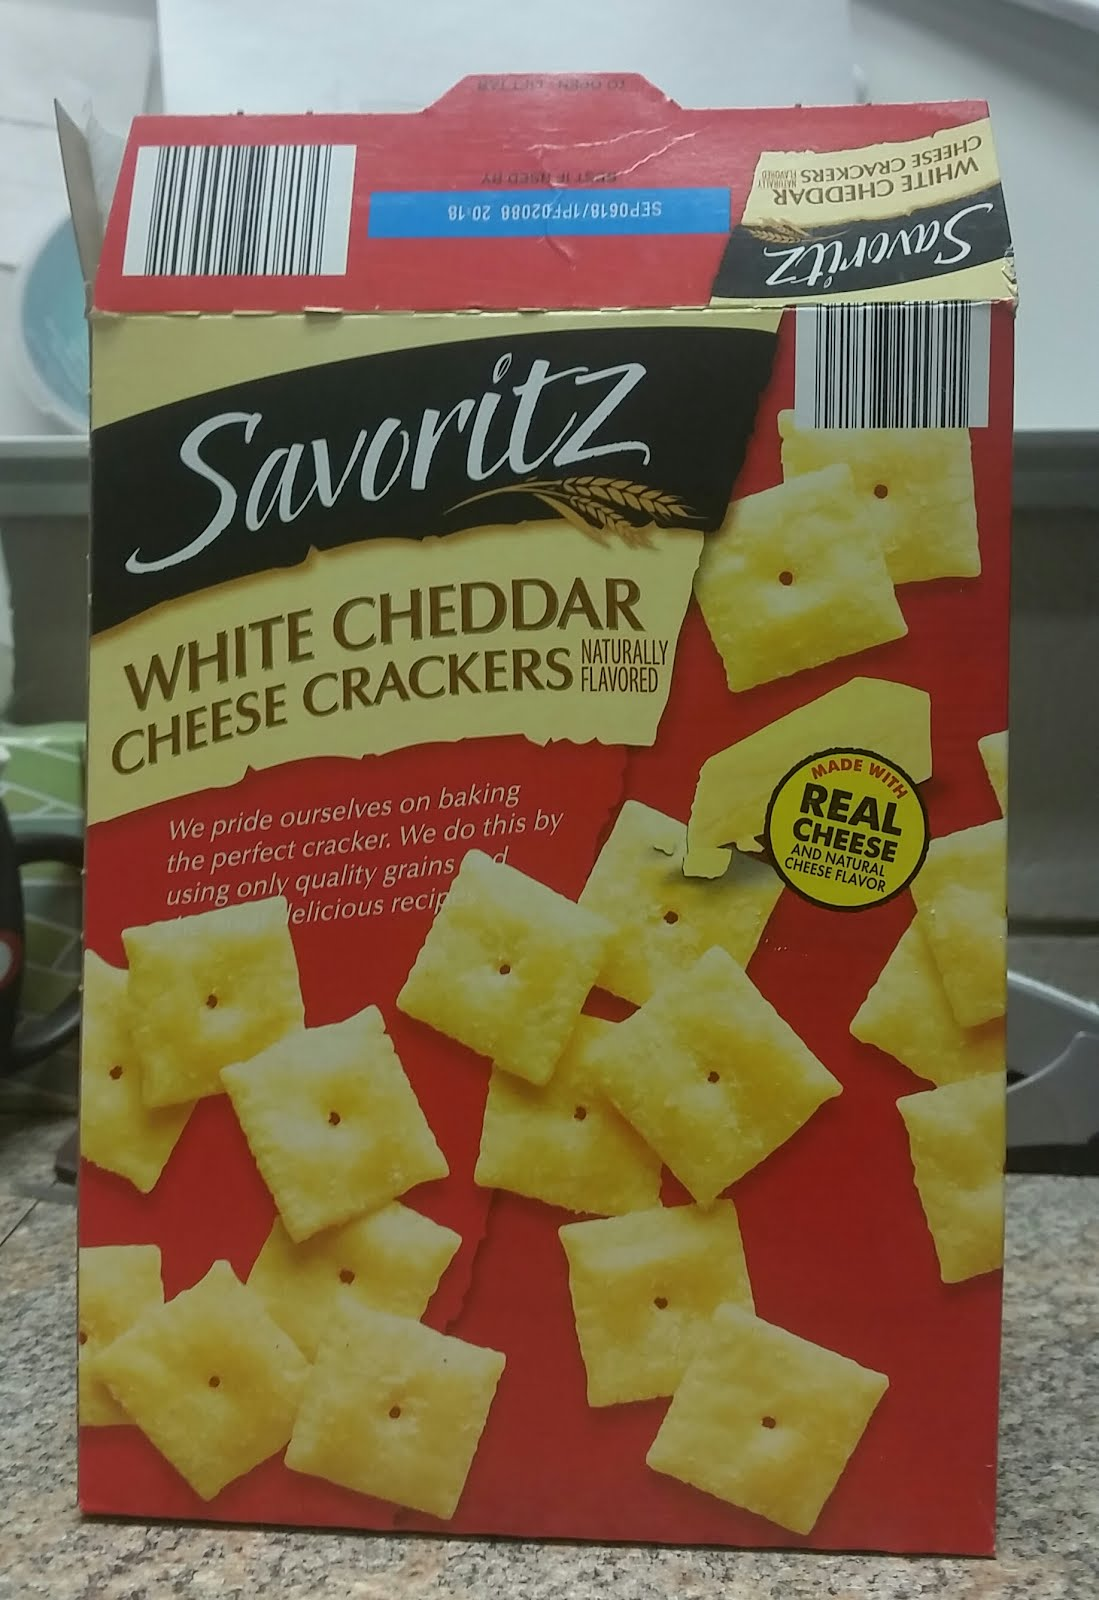 Dayhoff Soundtrack Box Of White Cheddar Cheese Crackers